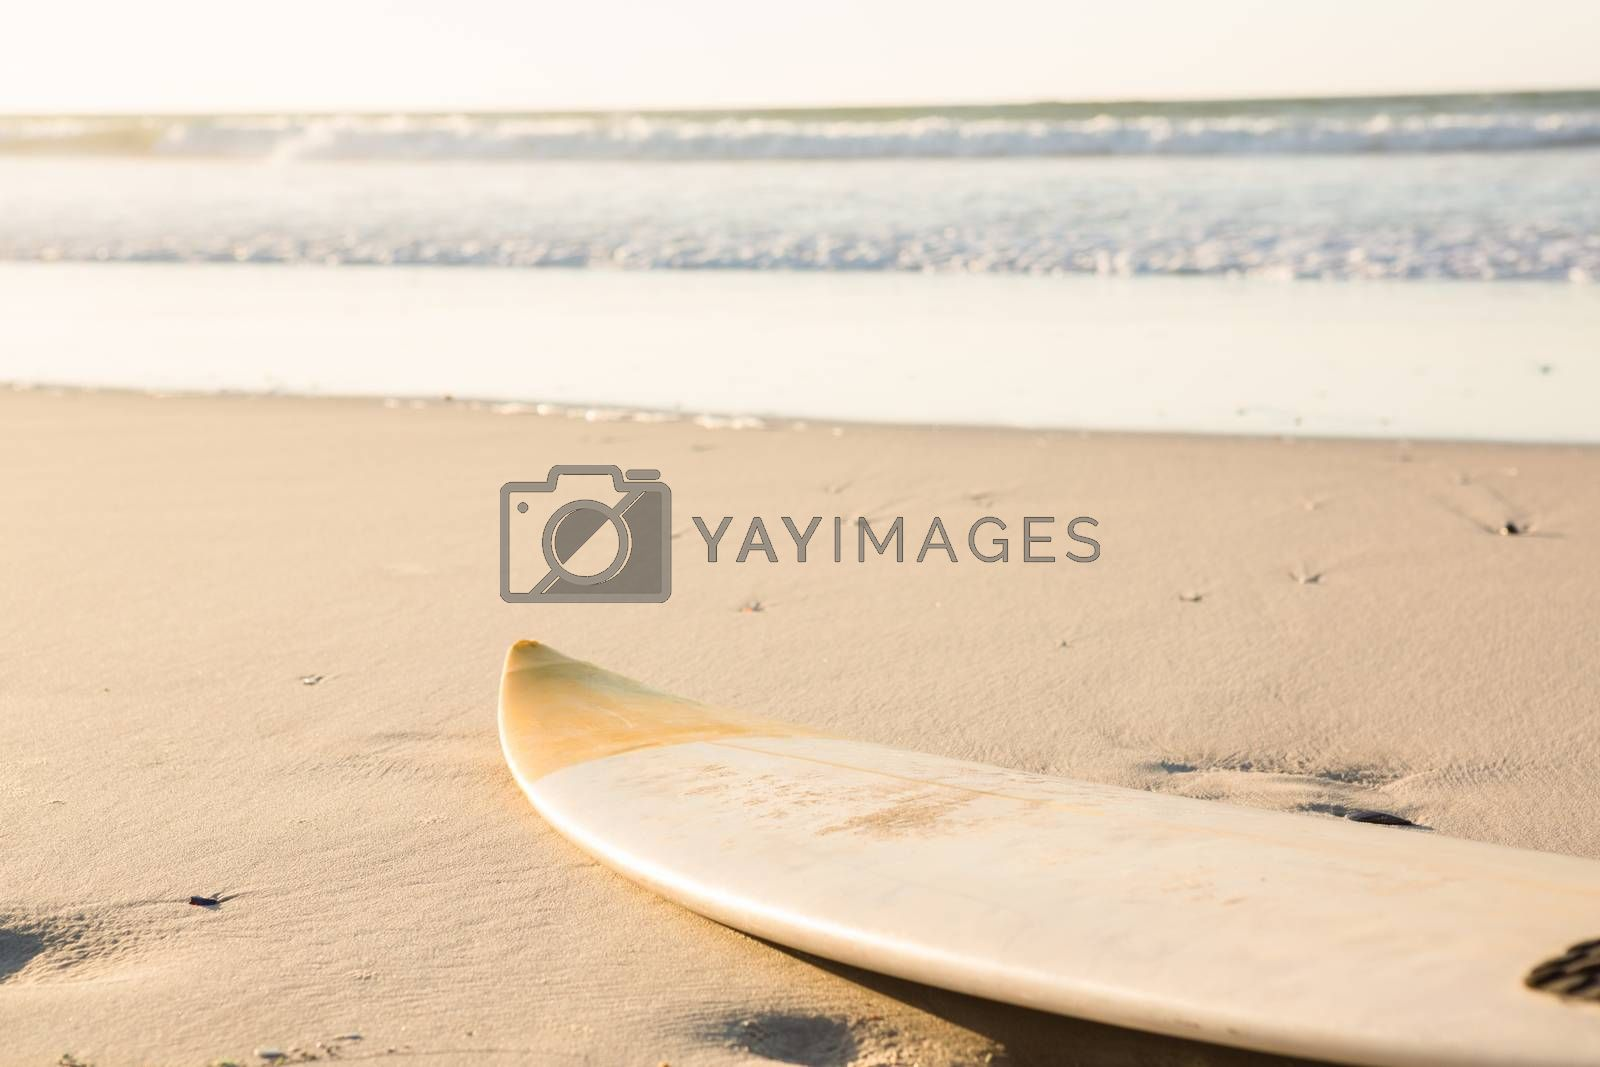 Surfboard on shore at beach during sunny day